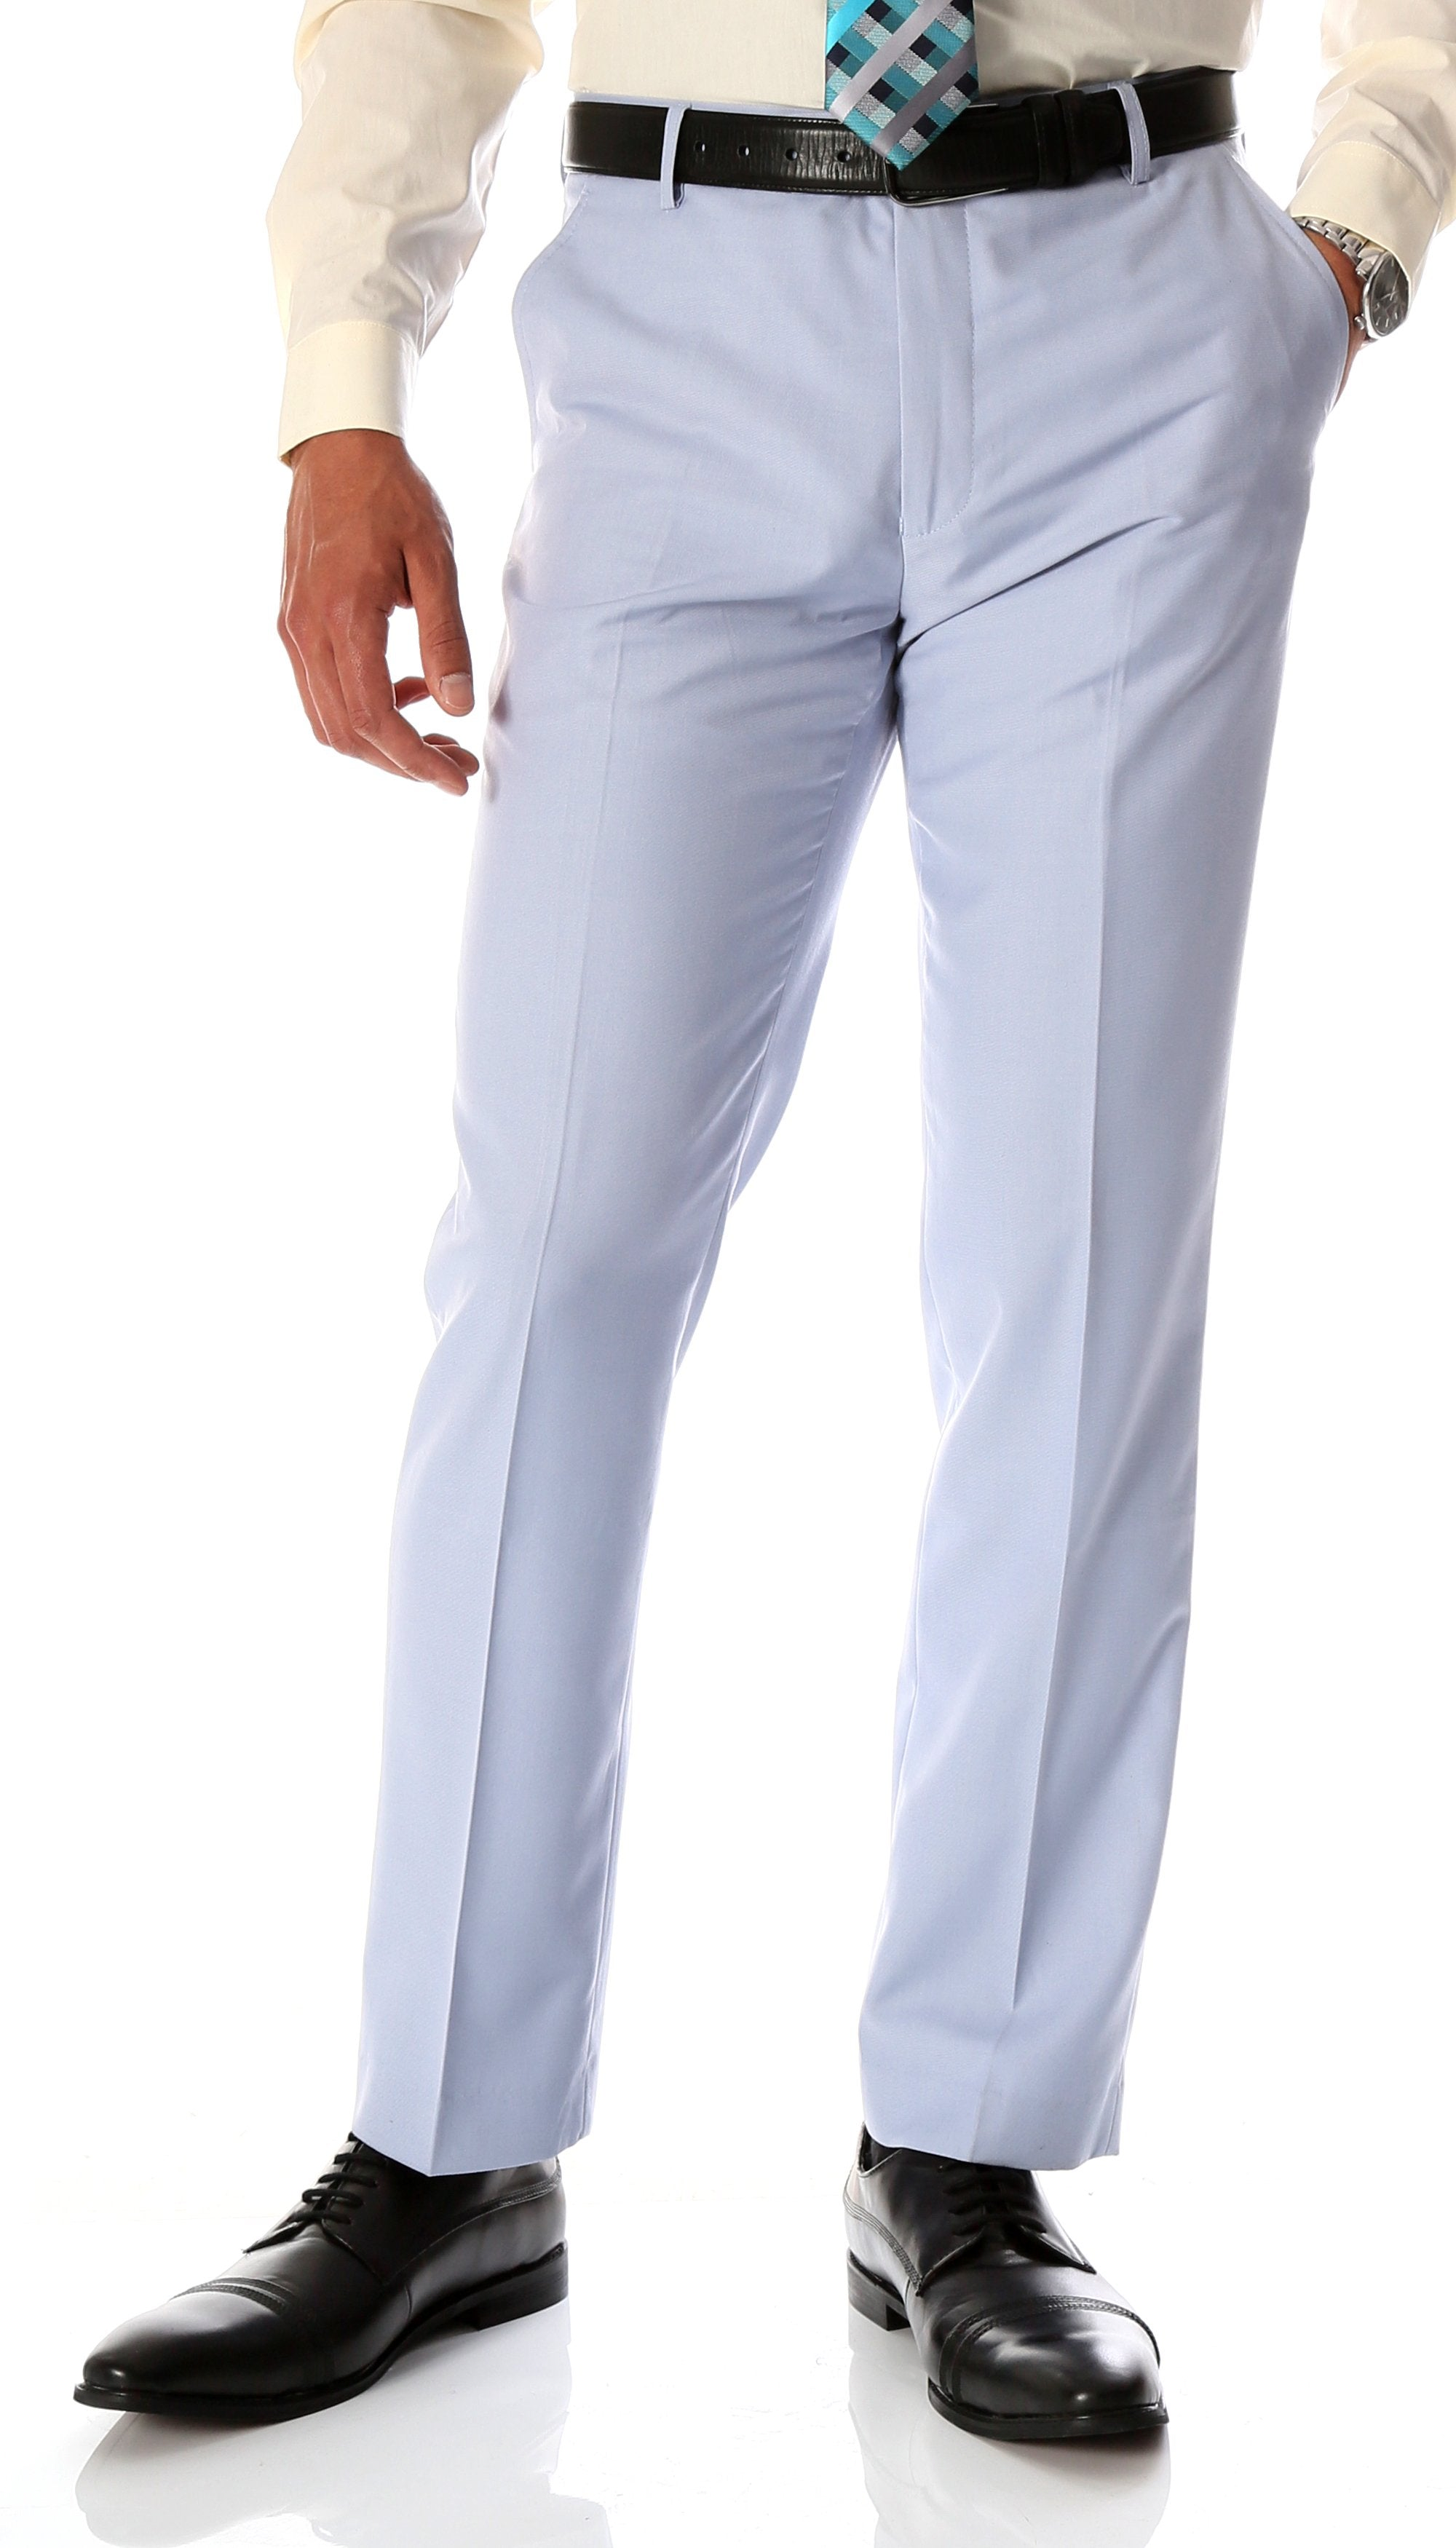 Ferrecci Men's Halo Sky Blue Slim Fit Flat-Front Dress Pants - Giorgio's Menswear